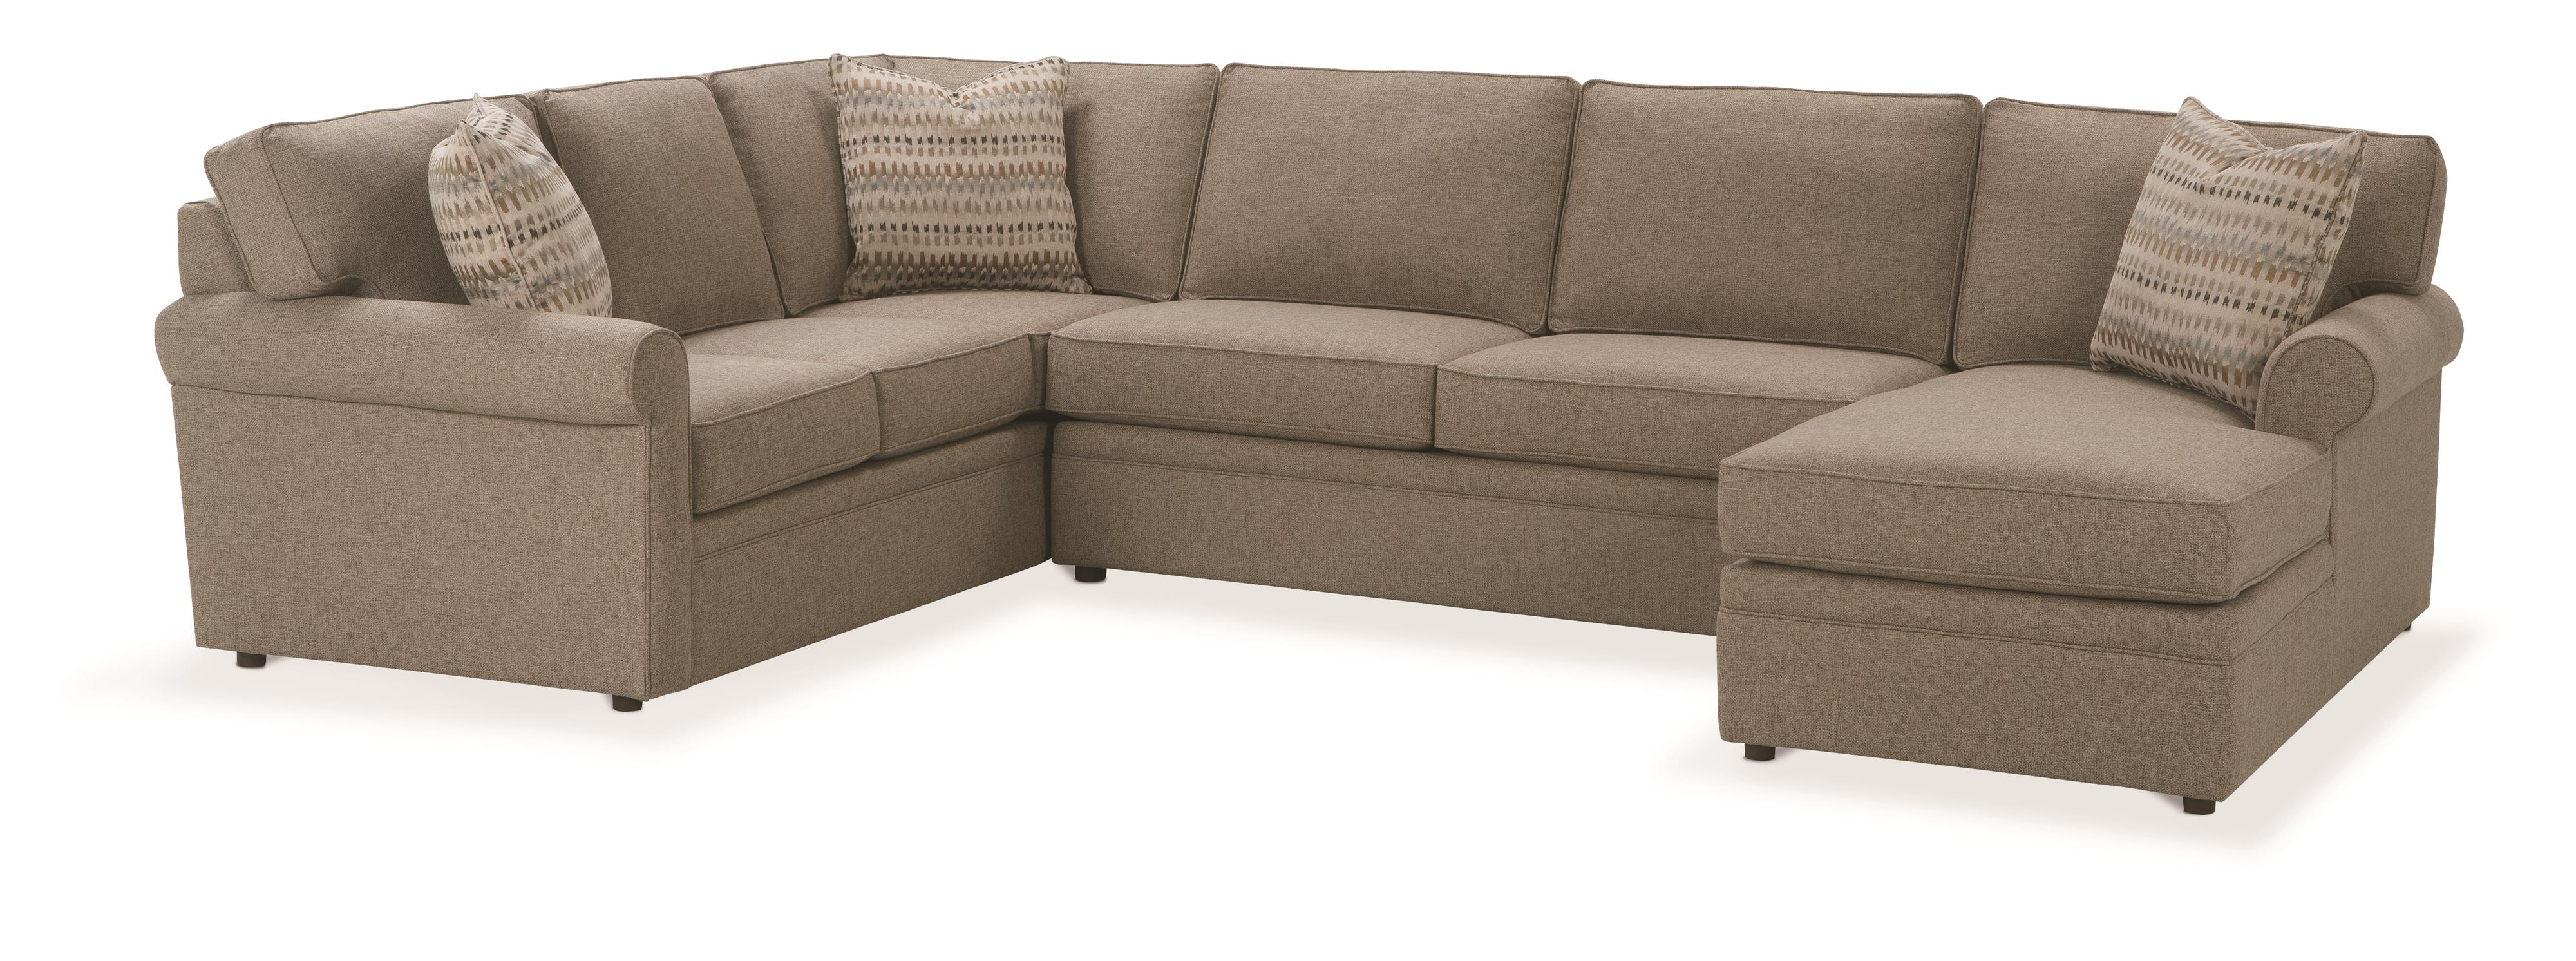 Rowe Brentwood Sectional Sofa - Item Number: 9258-RSE+9254+9251C-LSC-19119-89